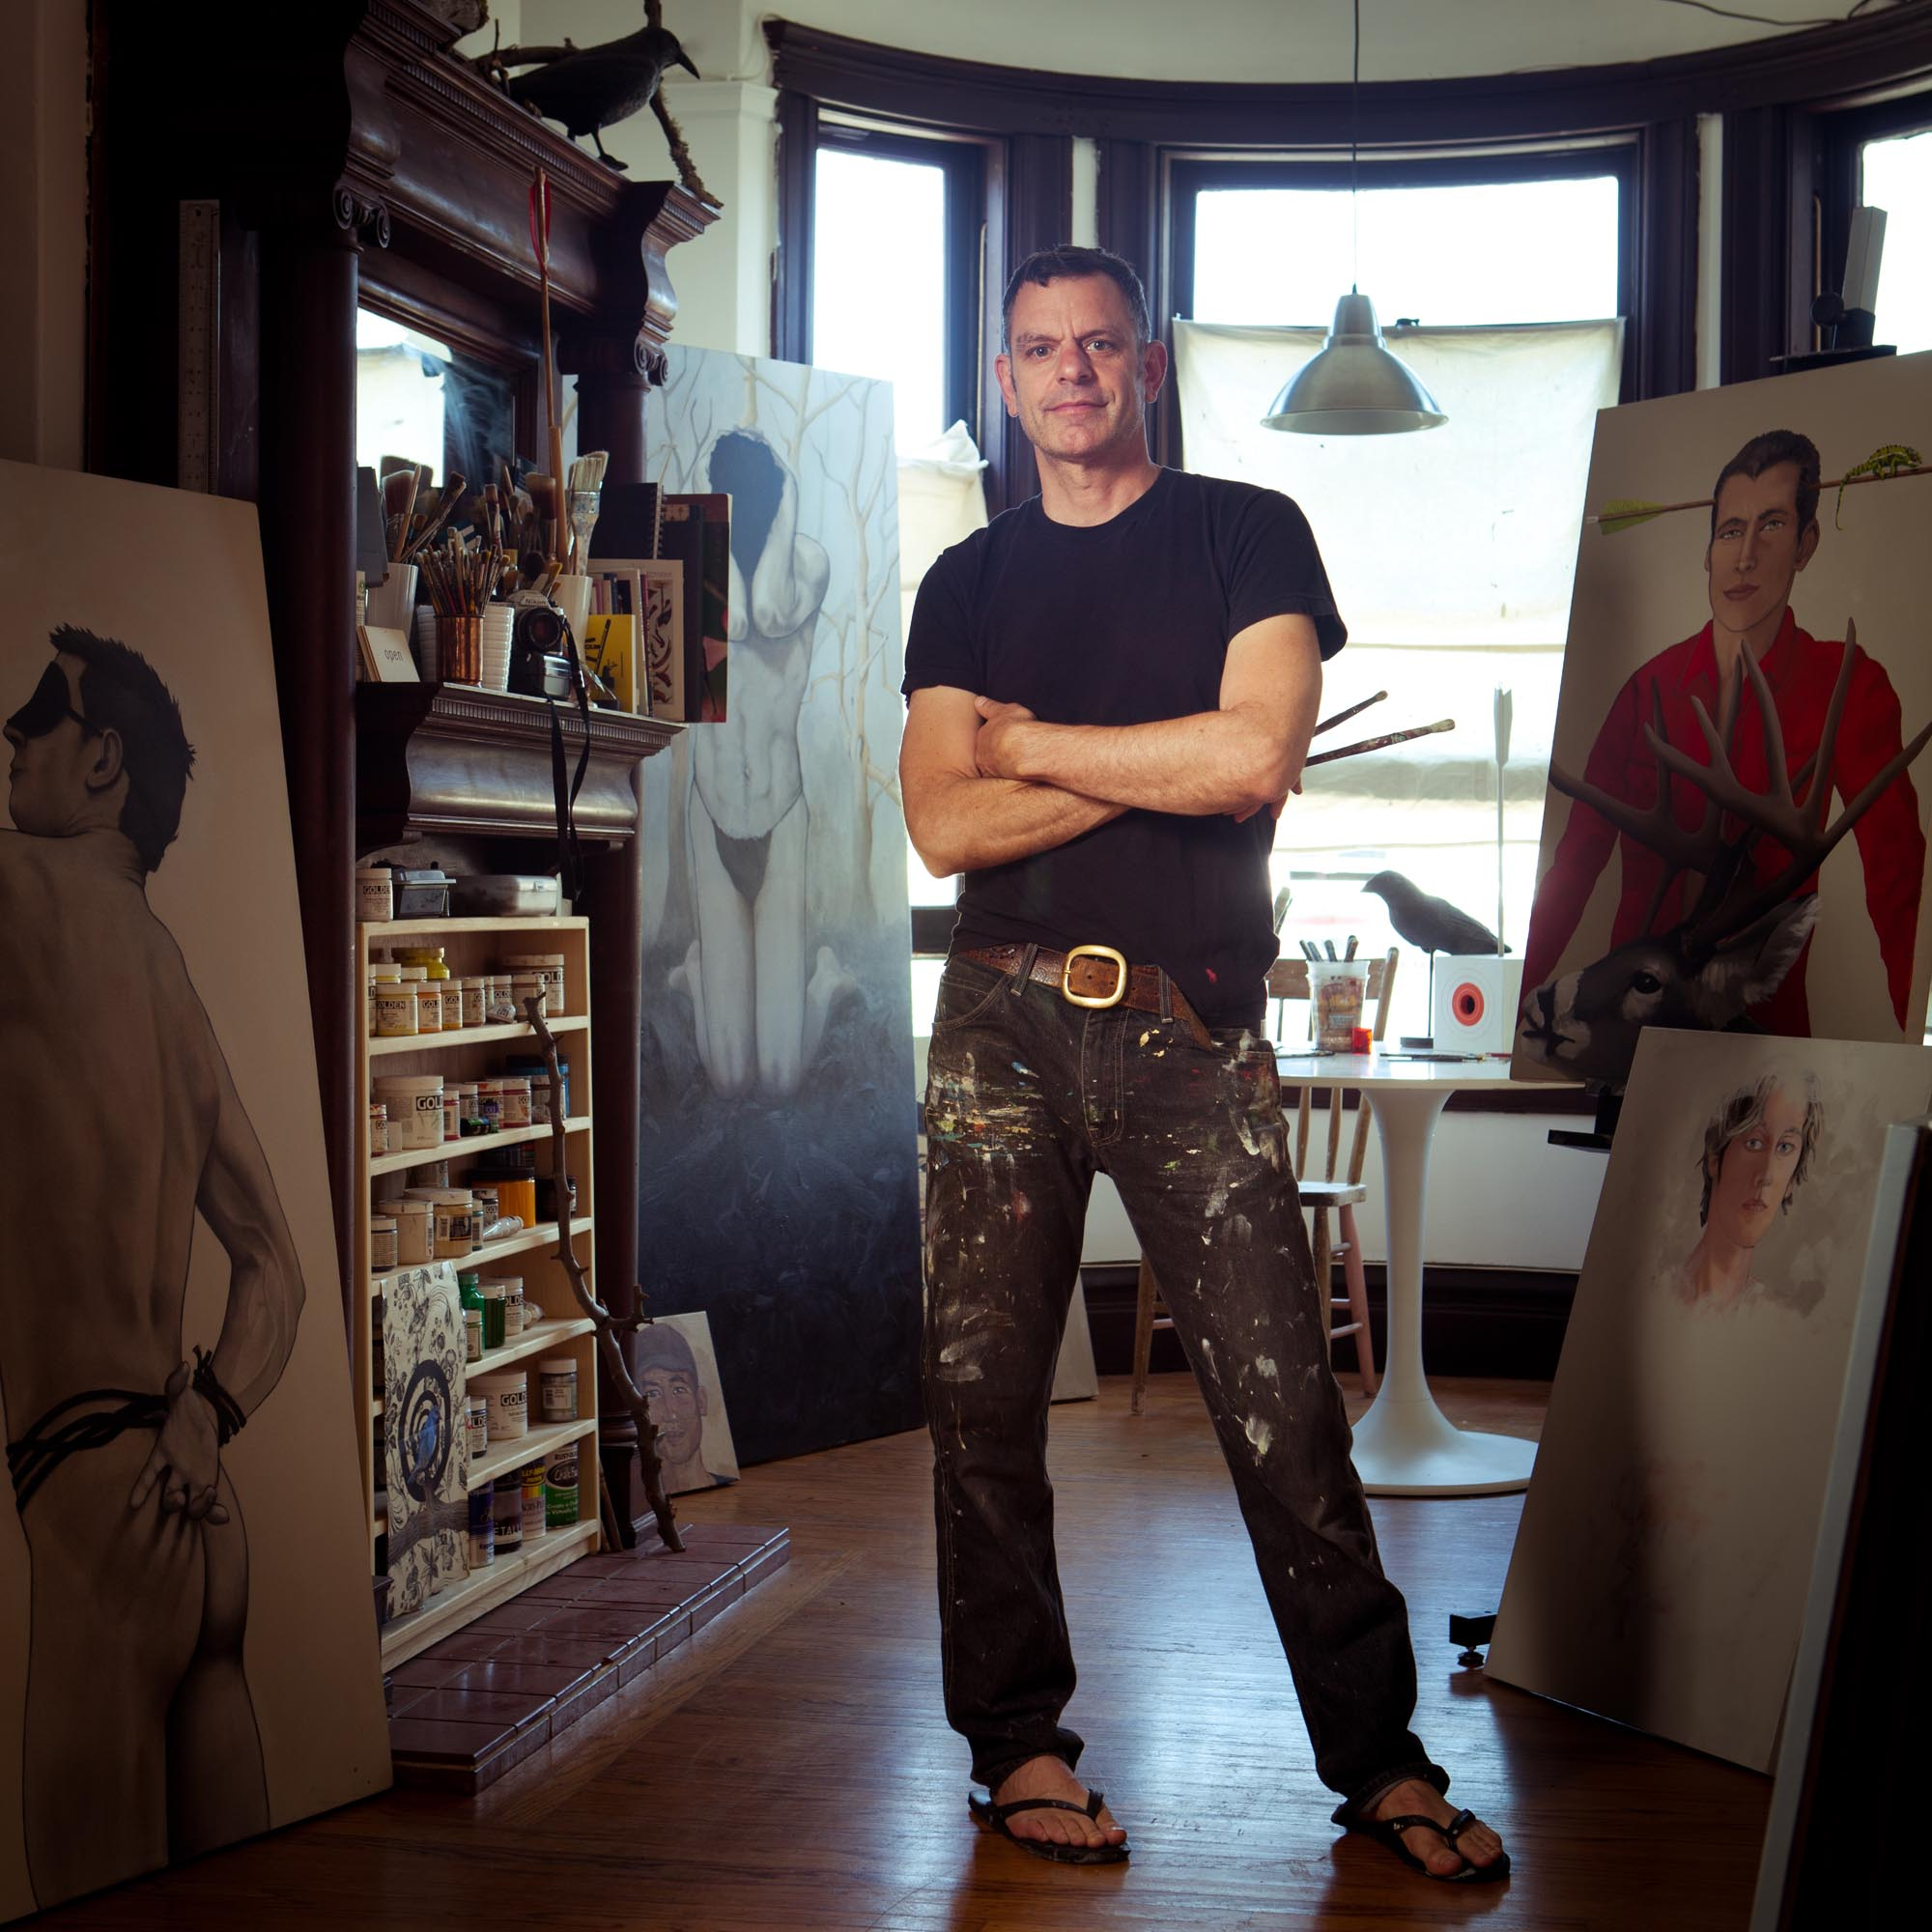 Bill Samios Painter in his San Francisco Apt/Studio photographed by Thomas Kuoh